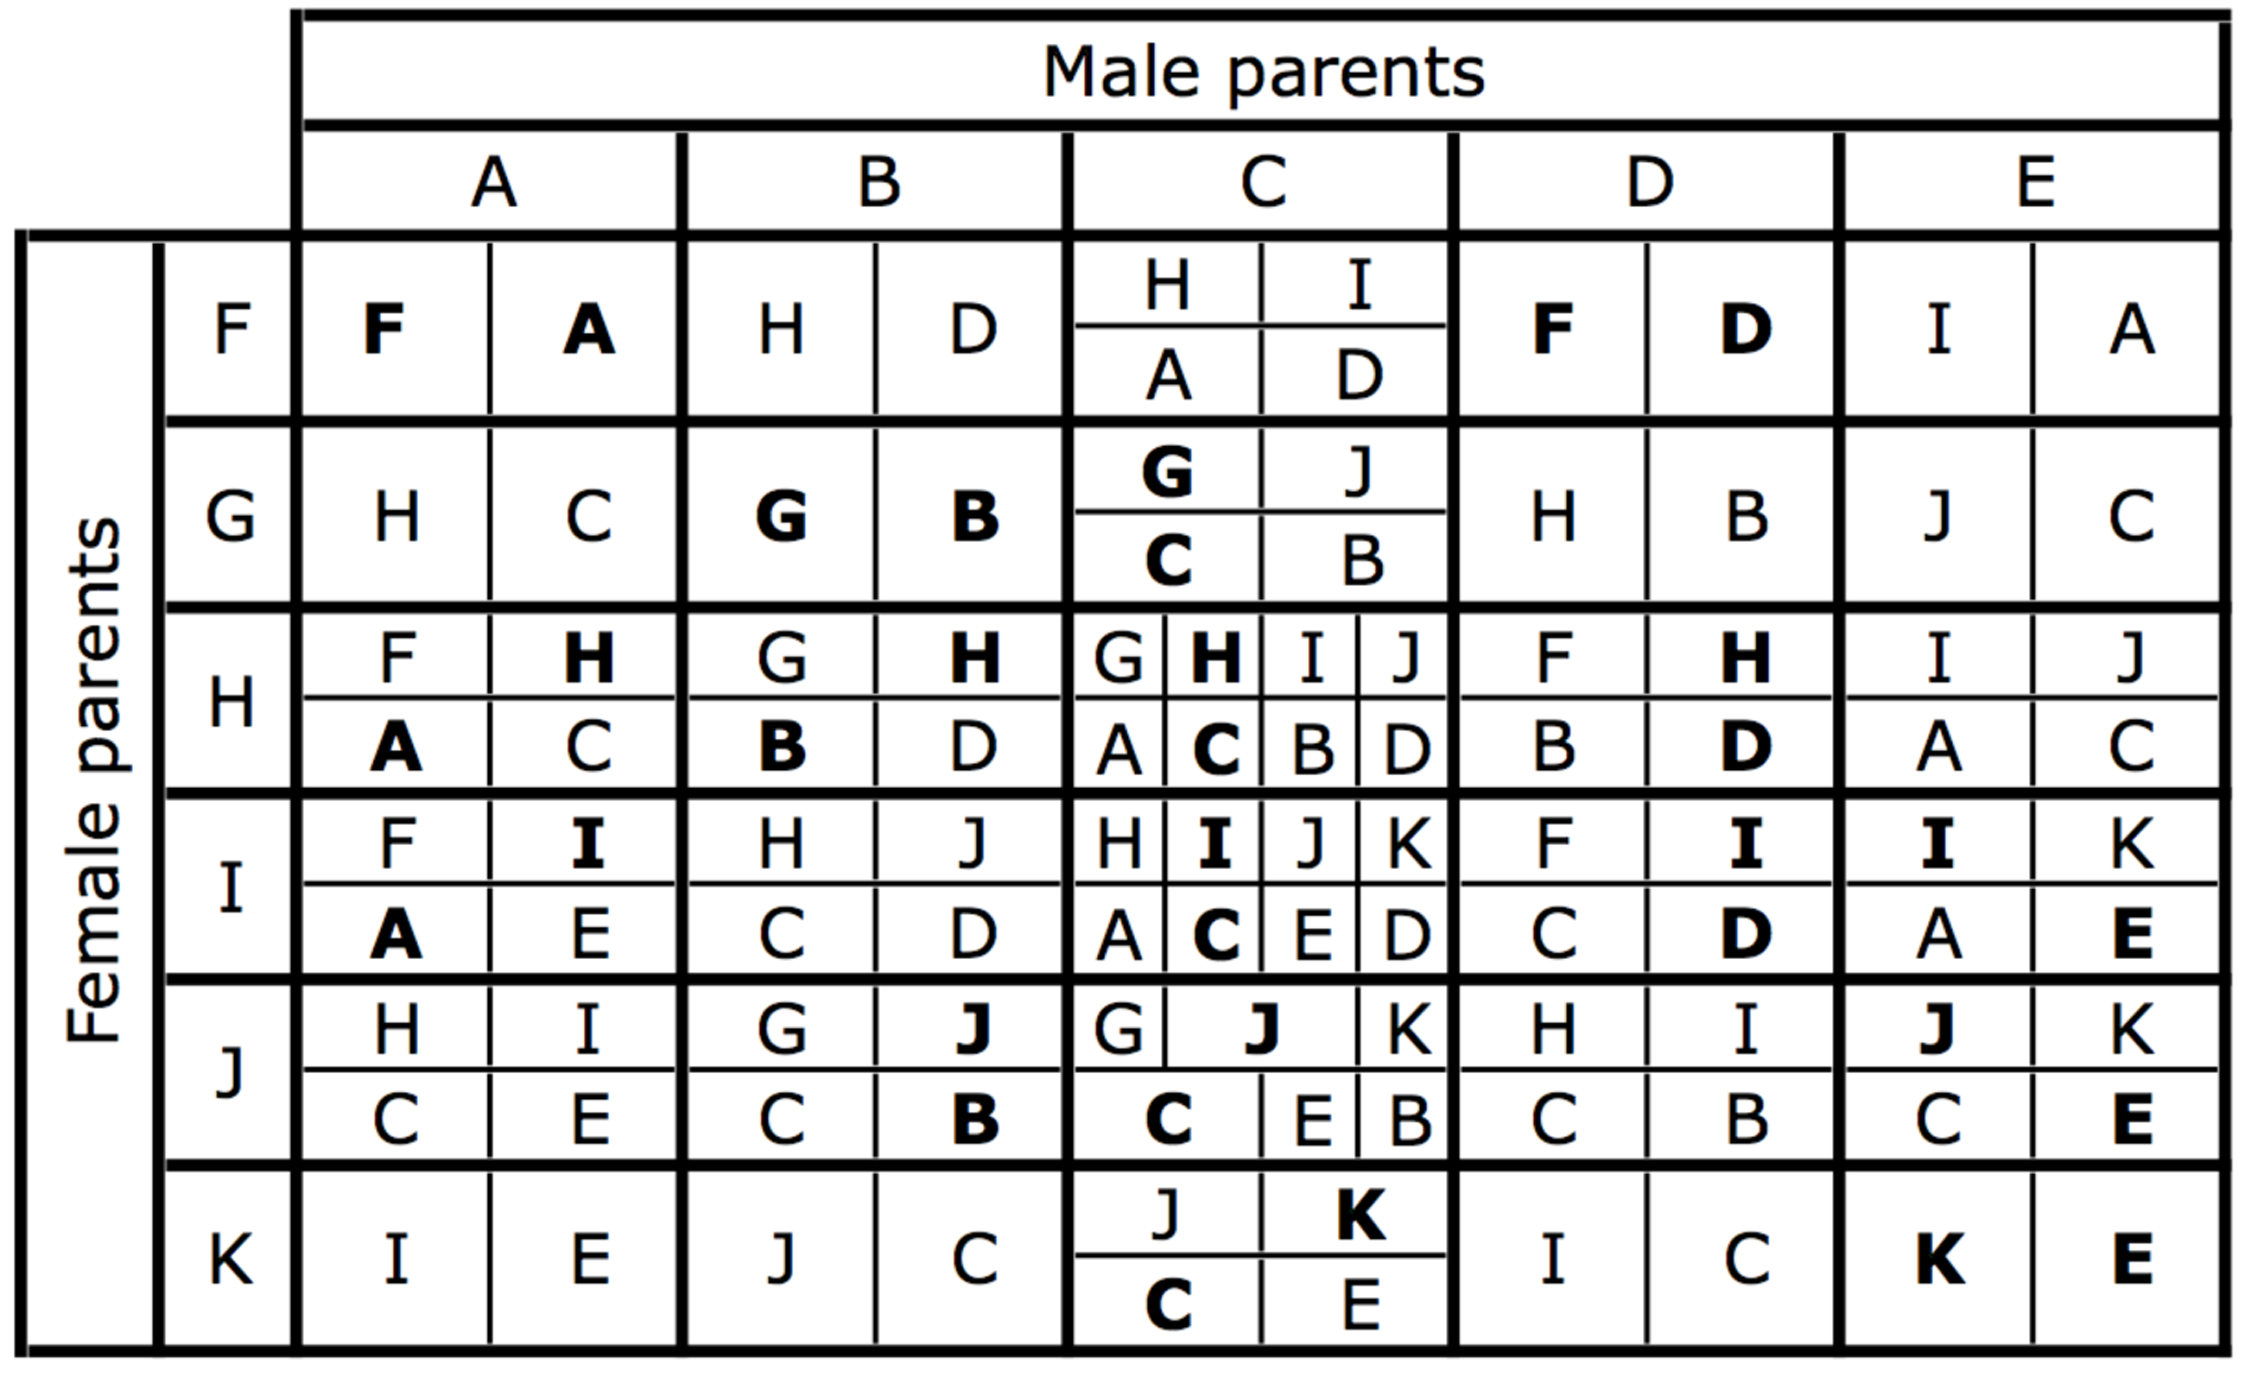 The karyotypes produced by each possible mating.